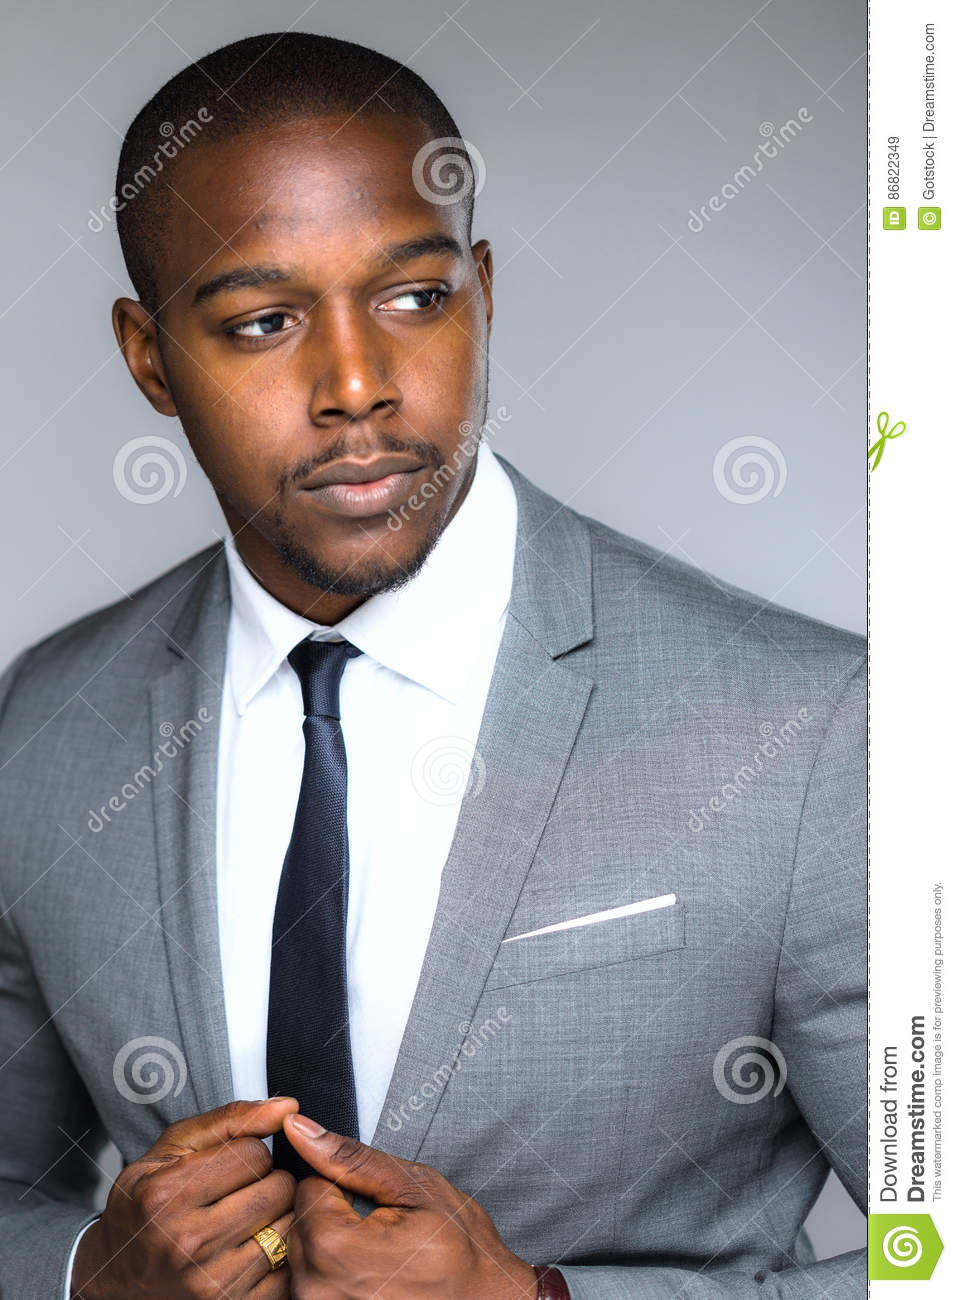 0cbbe031b9a Strong powerful handsome african american modern businessman pose looking  confident successful accomplished driven intense in full business suit